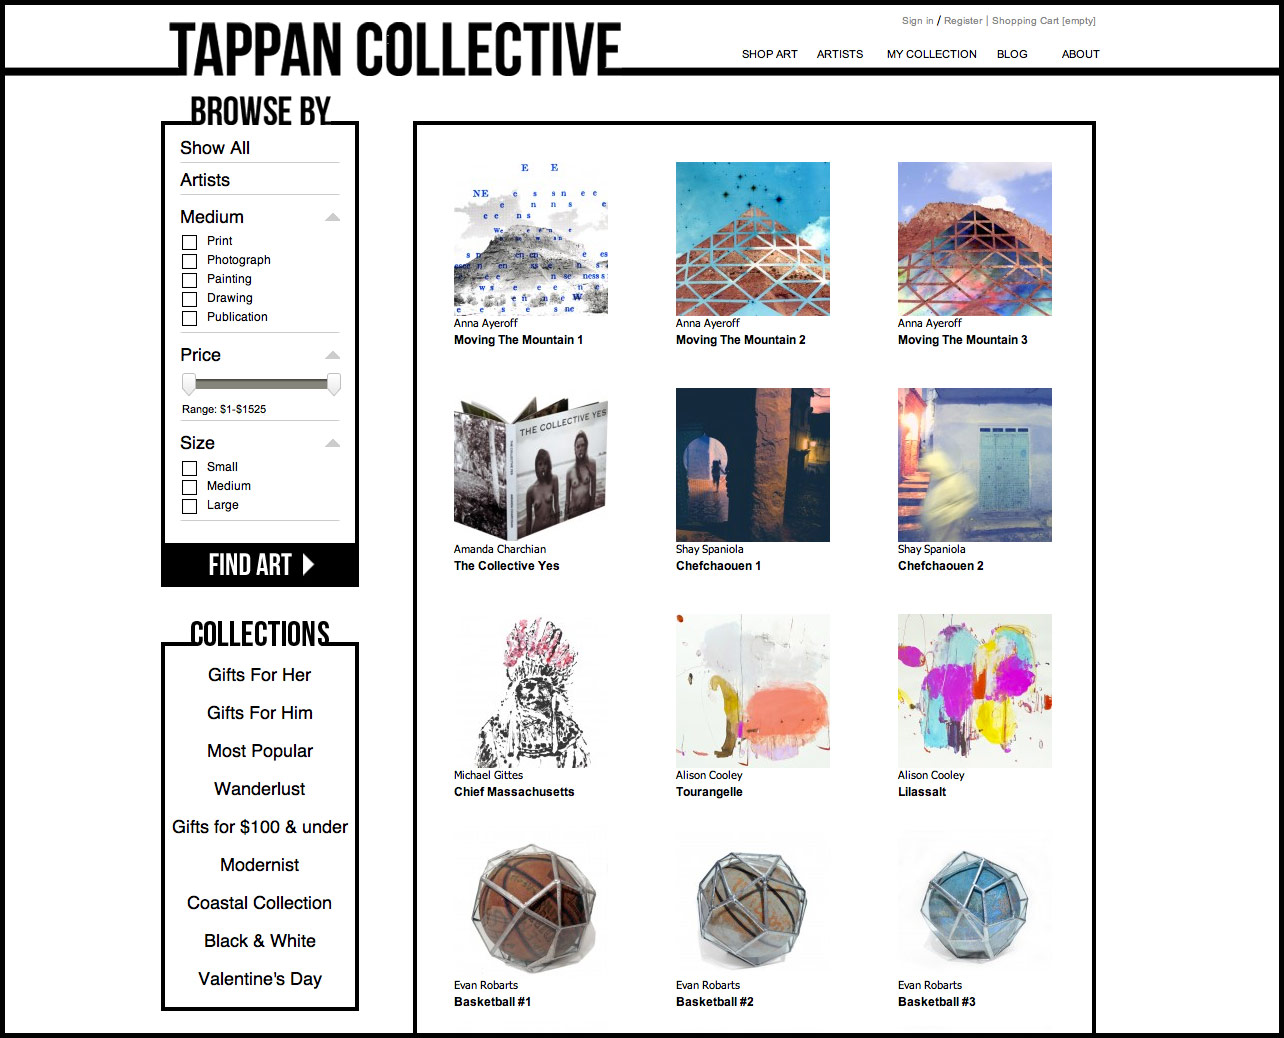 tappan-collective-1.jpg